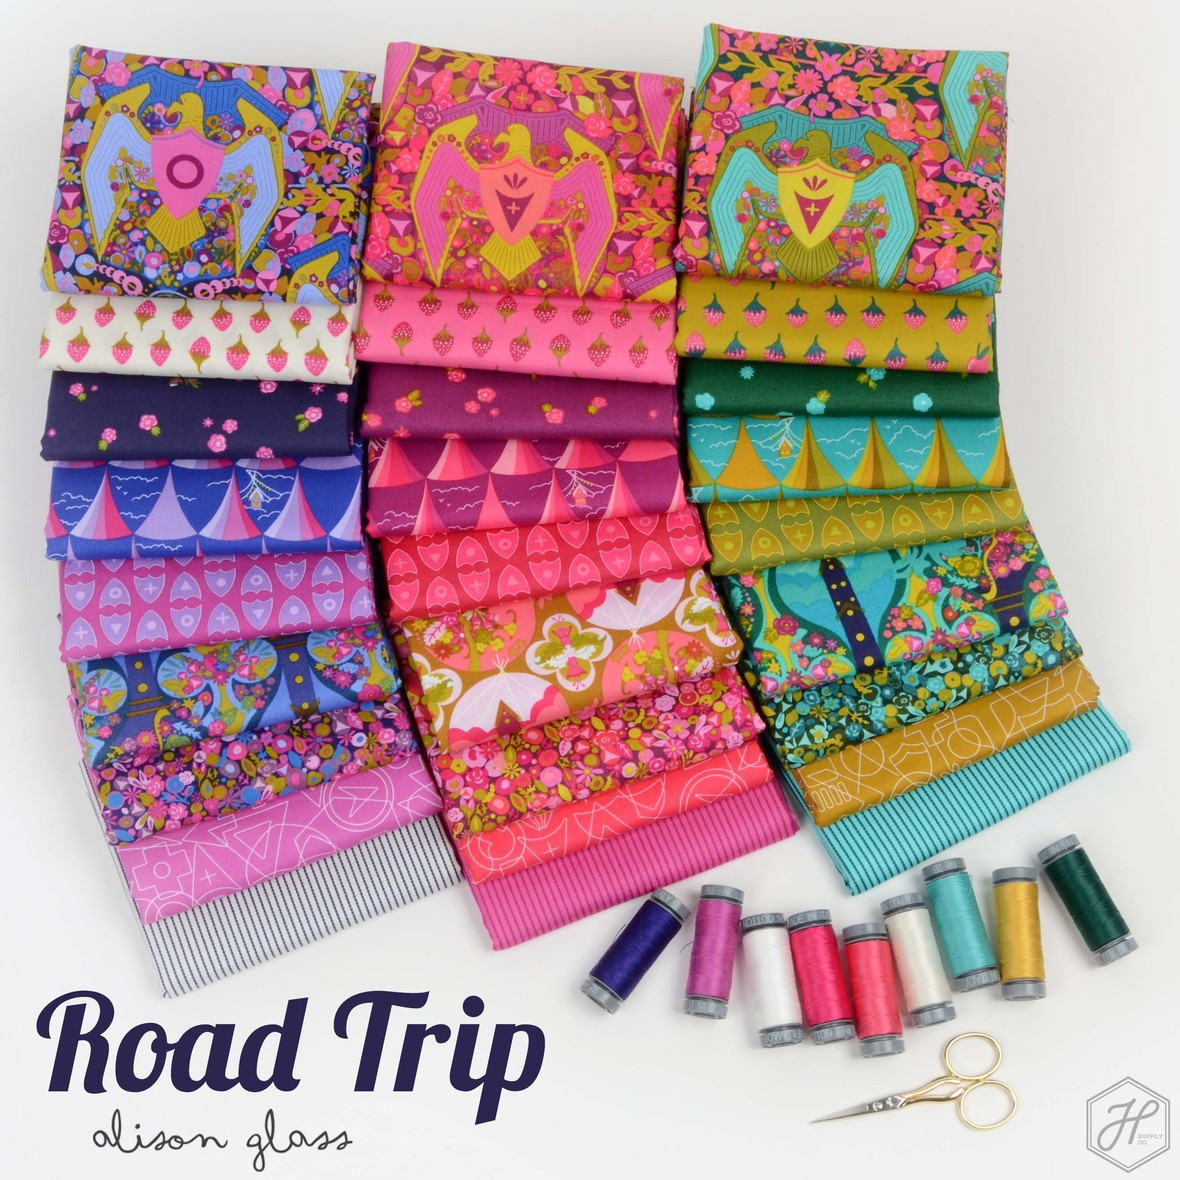 Road Trip Fabric Poster Alison Glass at Hawthorne Supply Co